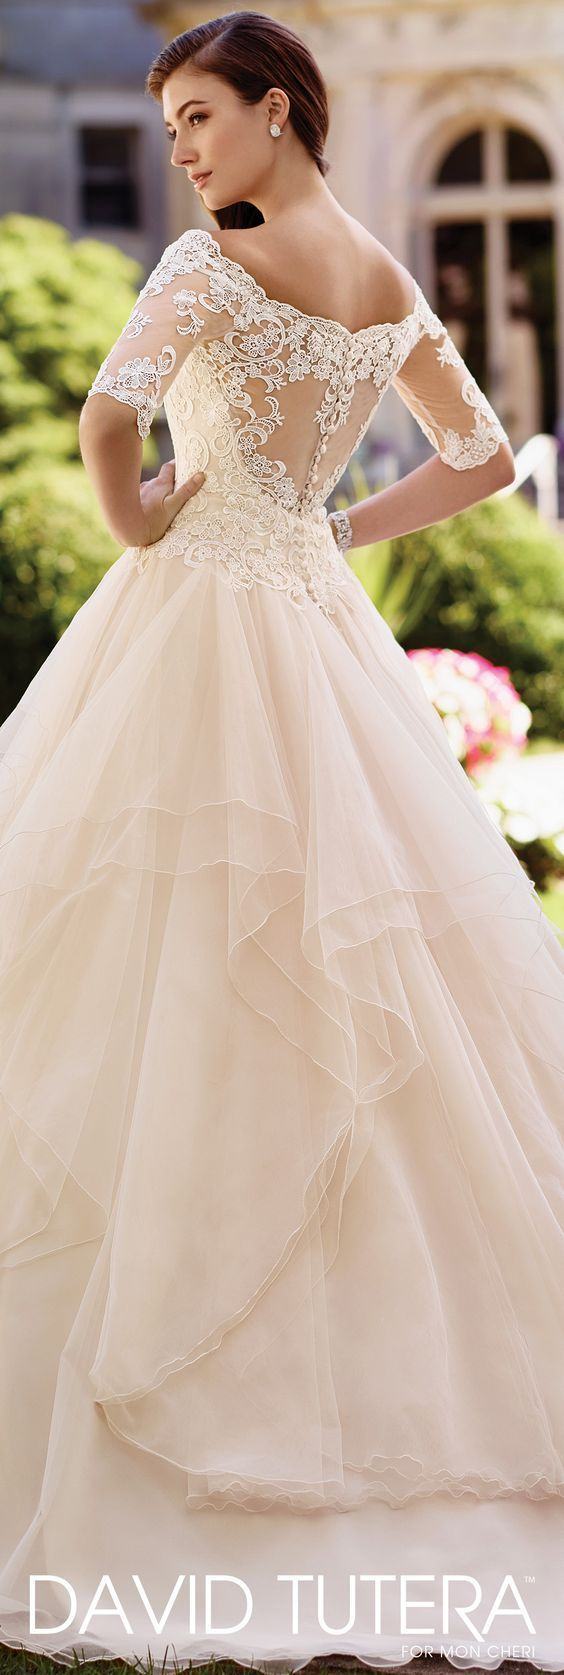 Wedding Dress by David Tutera for Mon Cheri 2017 Bridal Collection | Style No. » 117292 Aurelia